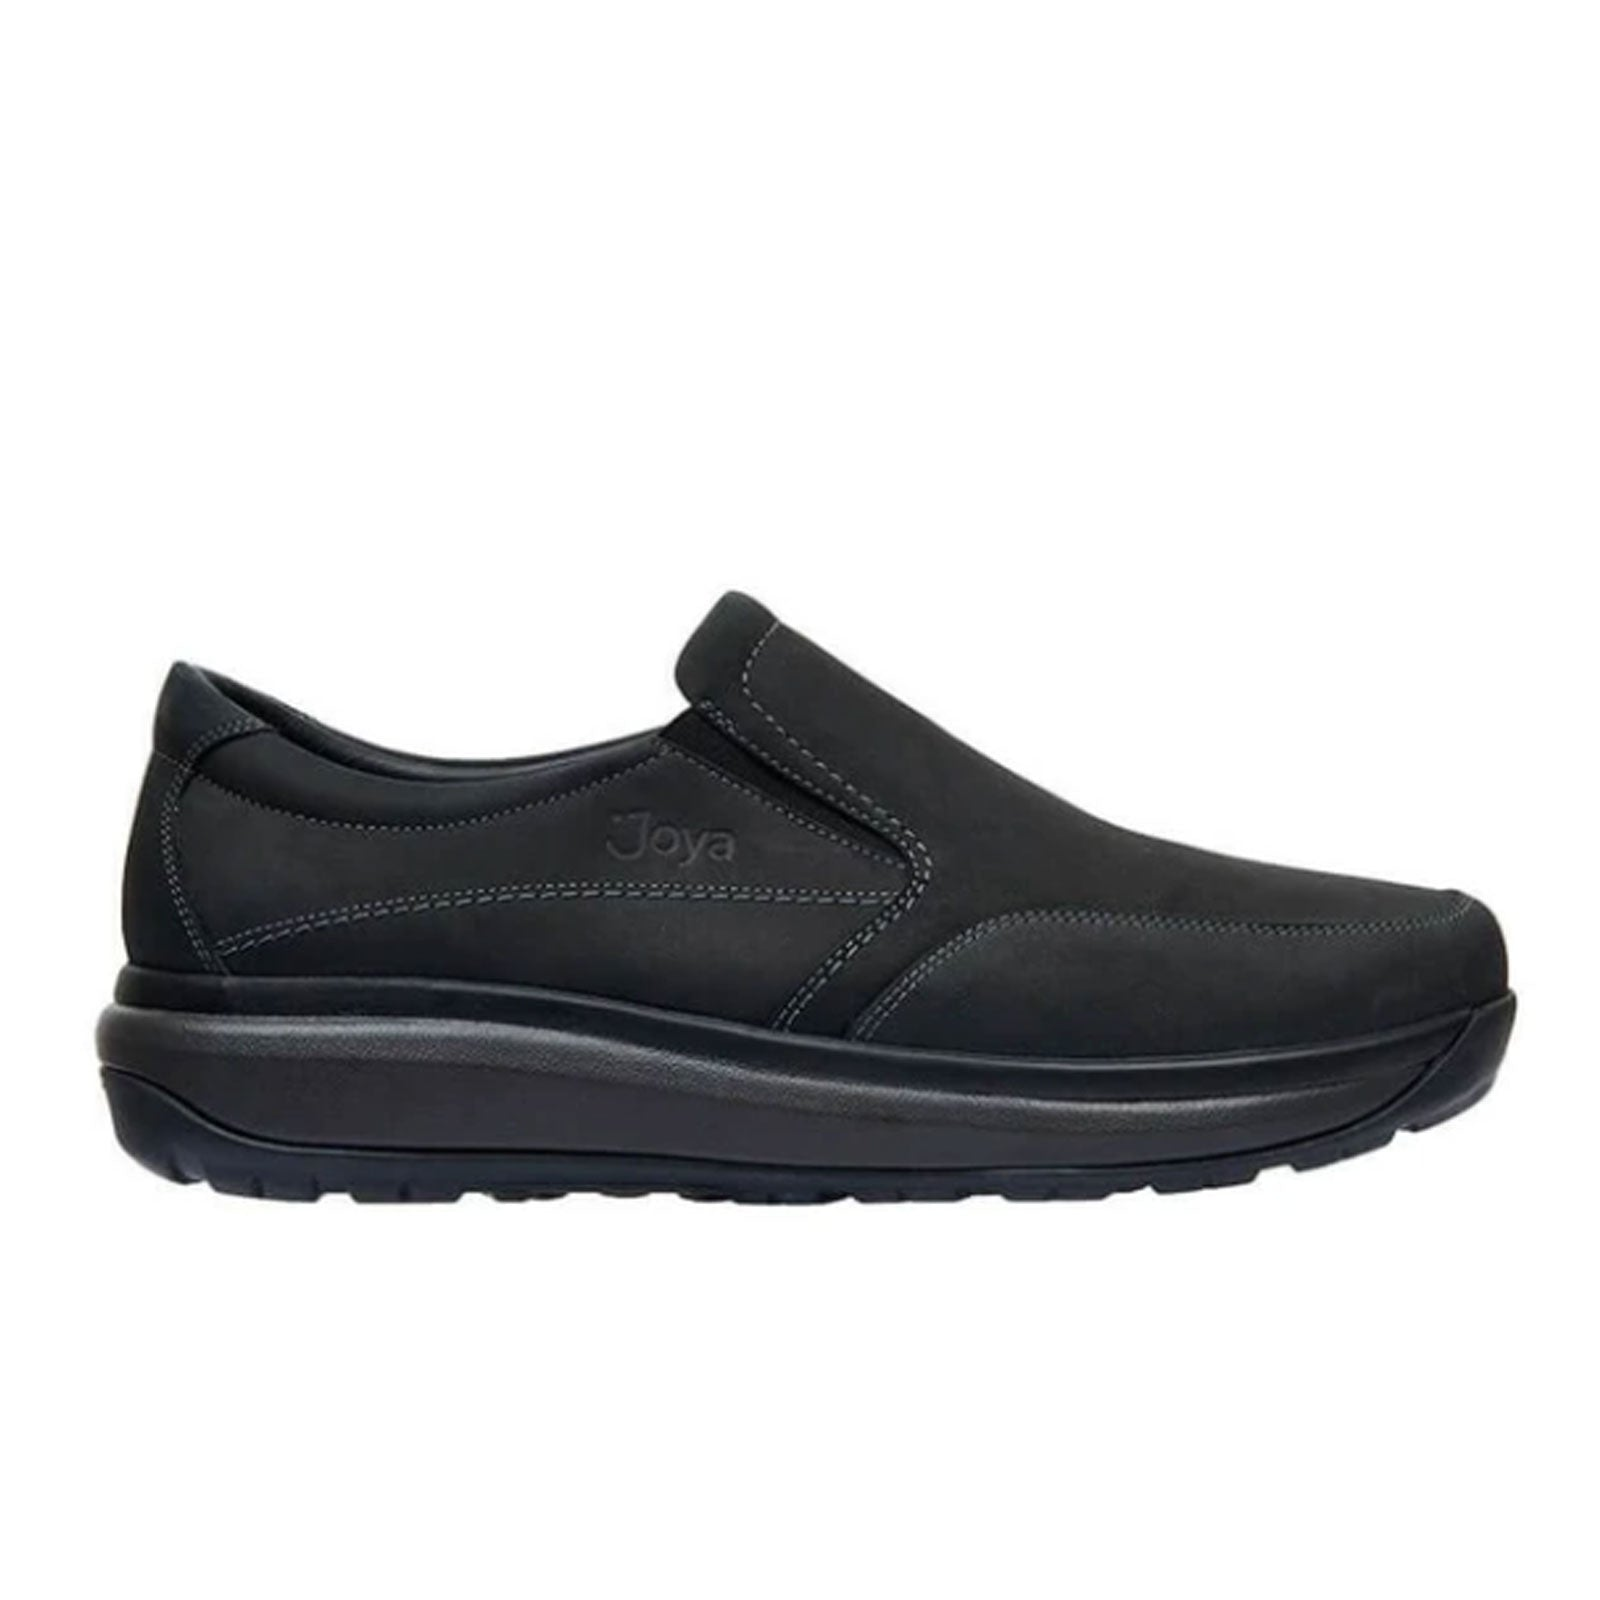 Joya Traveler II (Women) - Black Dress/Casual|Slip Ons - The Heel Shoe Fitters